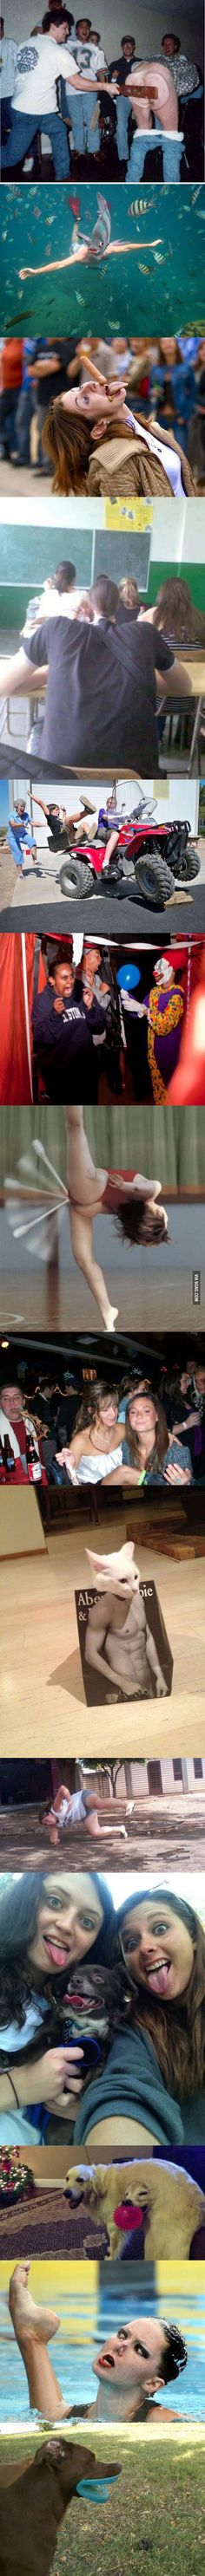 9GAG - Picture timing level: Ridiculous